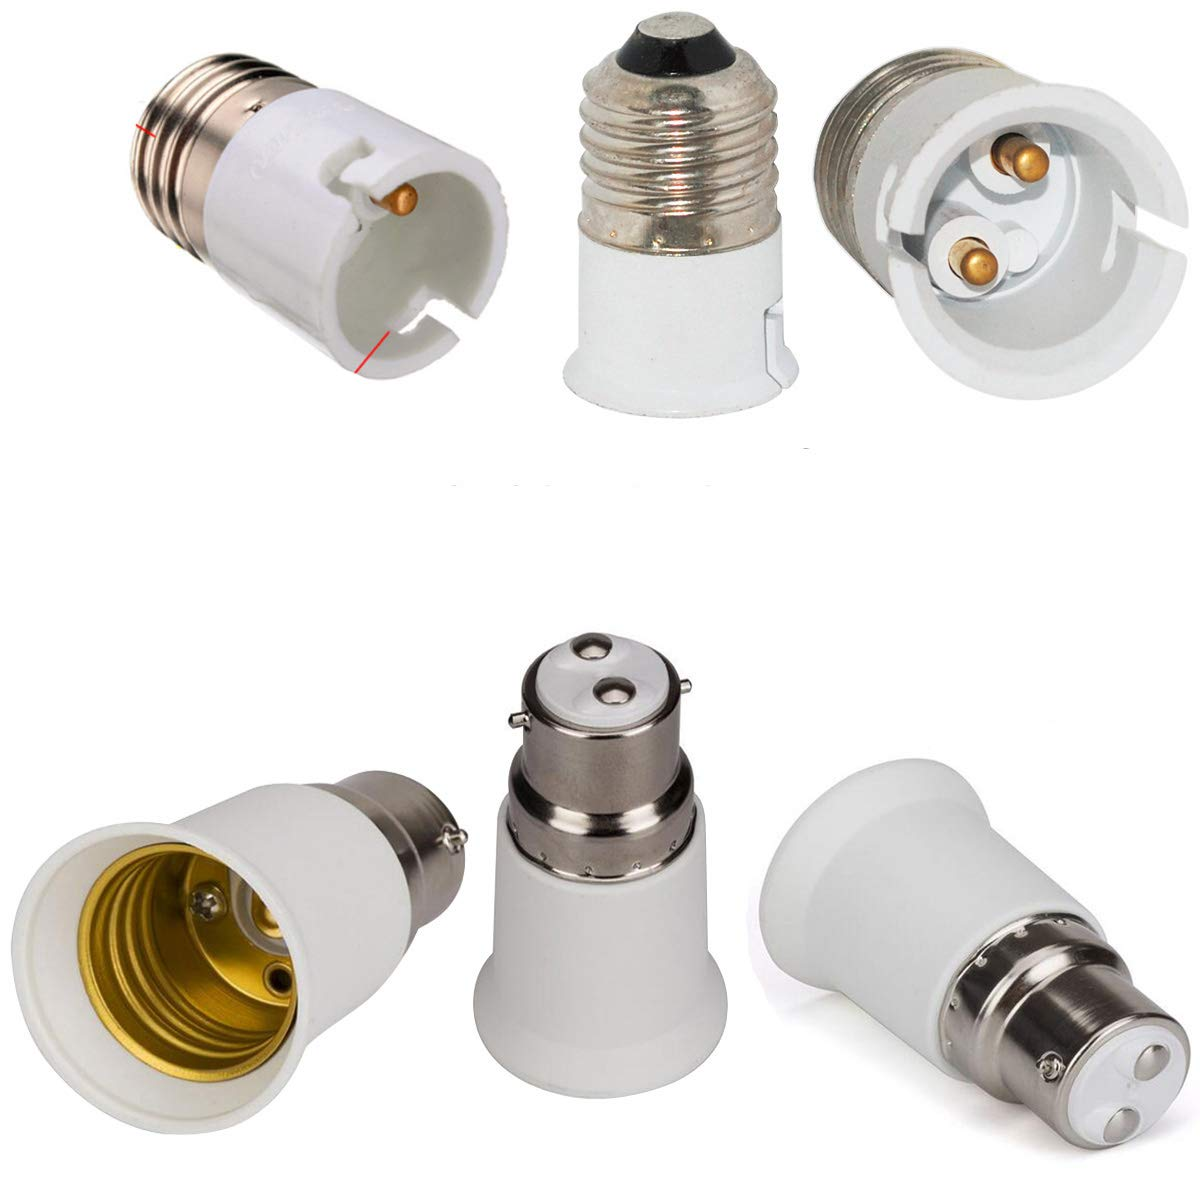 3-Pack E27 to B22 Holder Bulb Adapter 3-Pack B22 to E27 Socket Extender Replacement LED Lamp Screw Base Bulb Holder Converter Lamp Socket Adapter AMAZFASHION